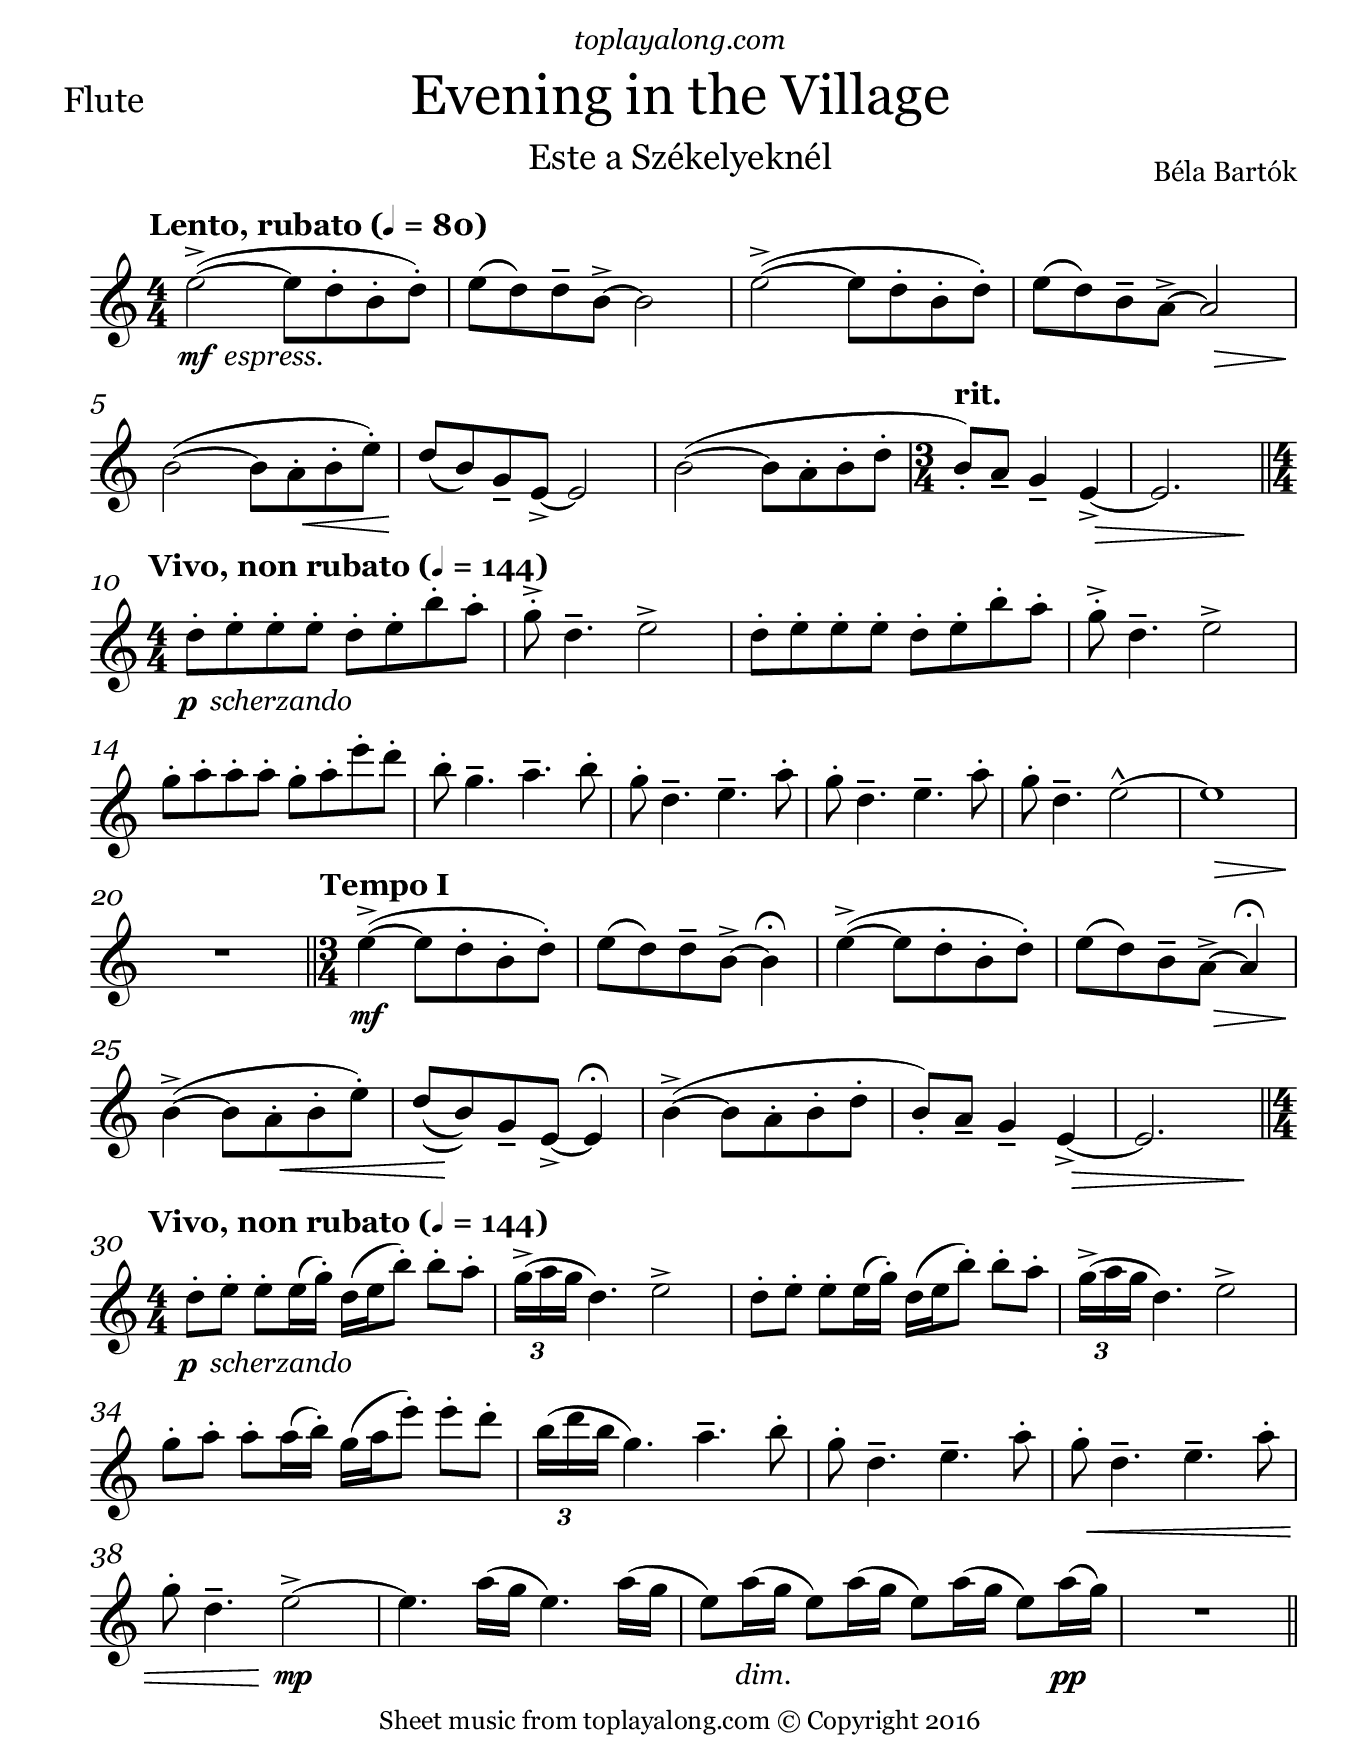 Evening in the Village by Bartok. Sheet music for Flute, page 1.